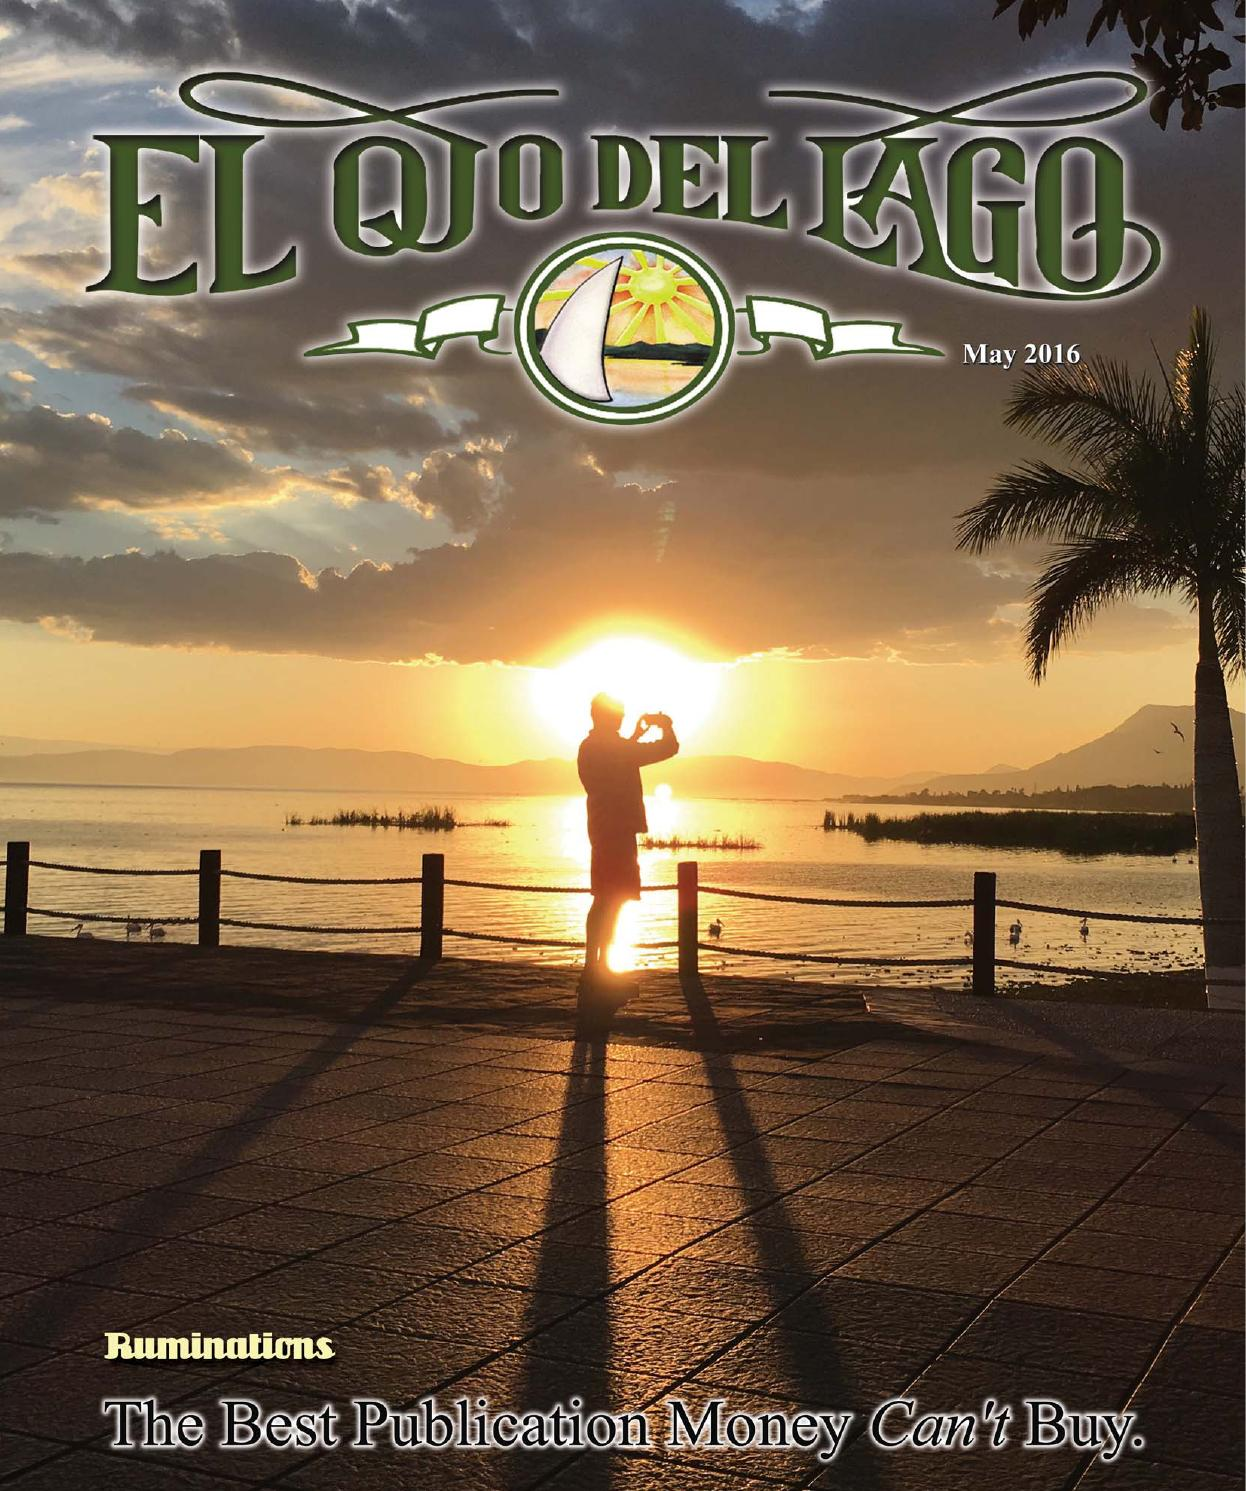 el ojo del lago may 2016 by el ojo del lago issuu